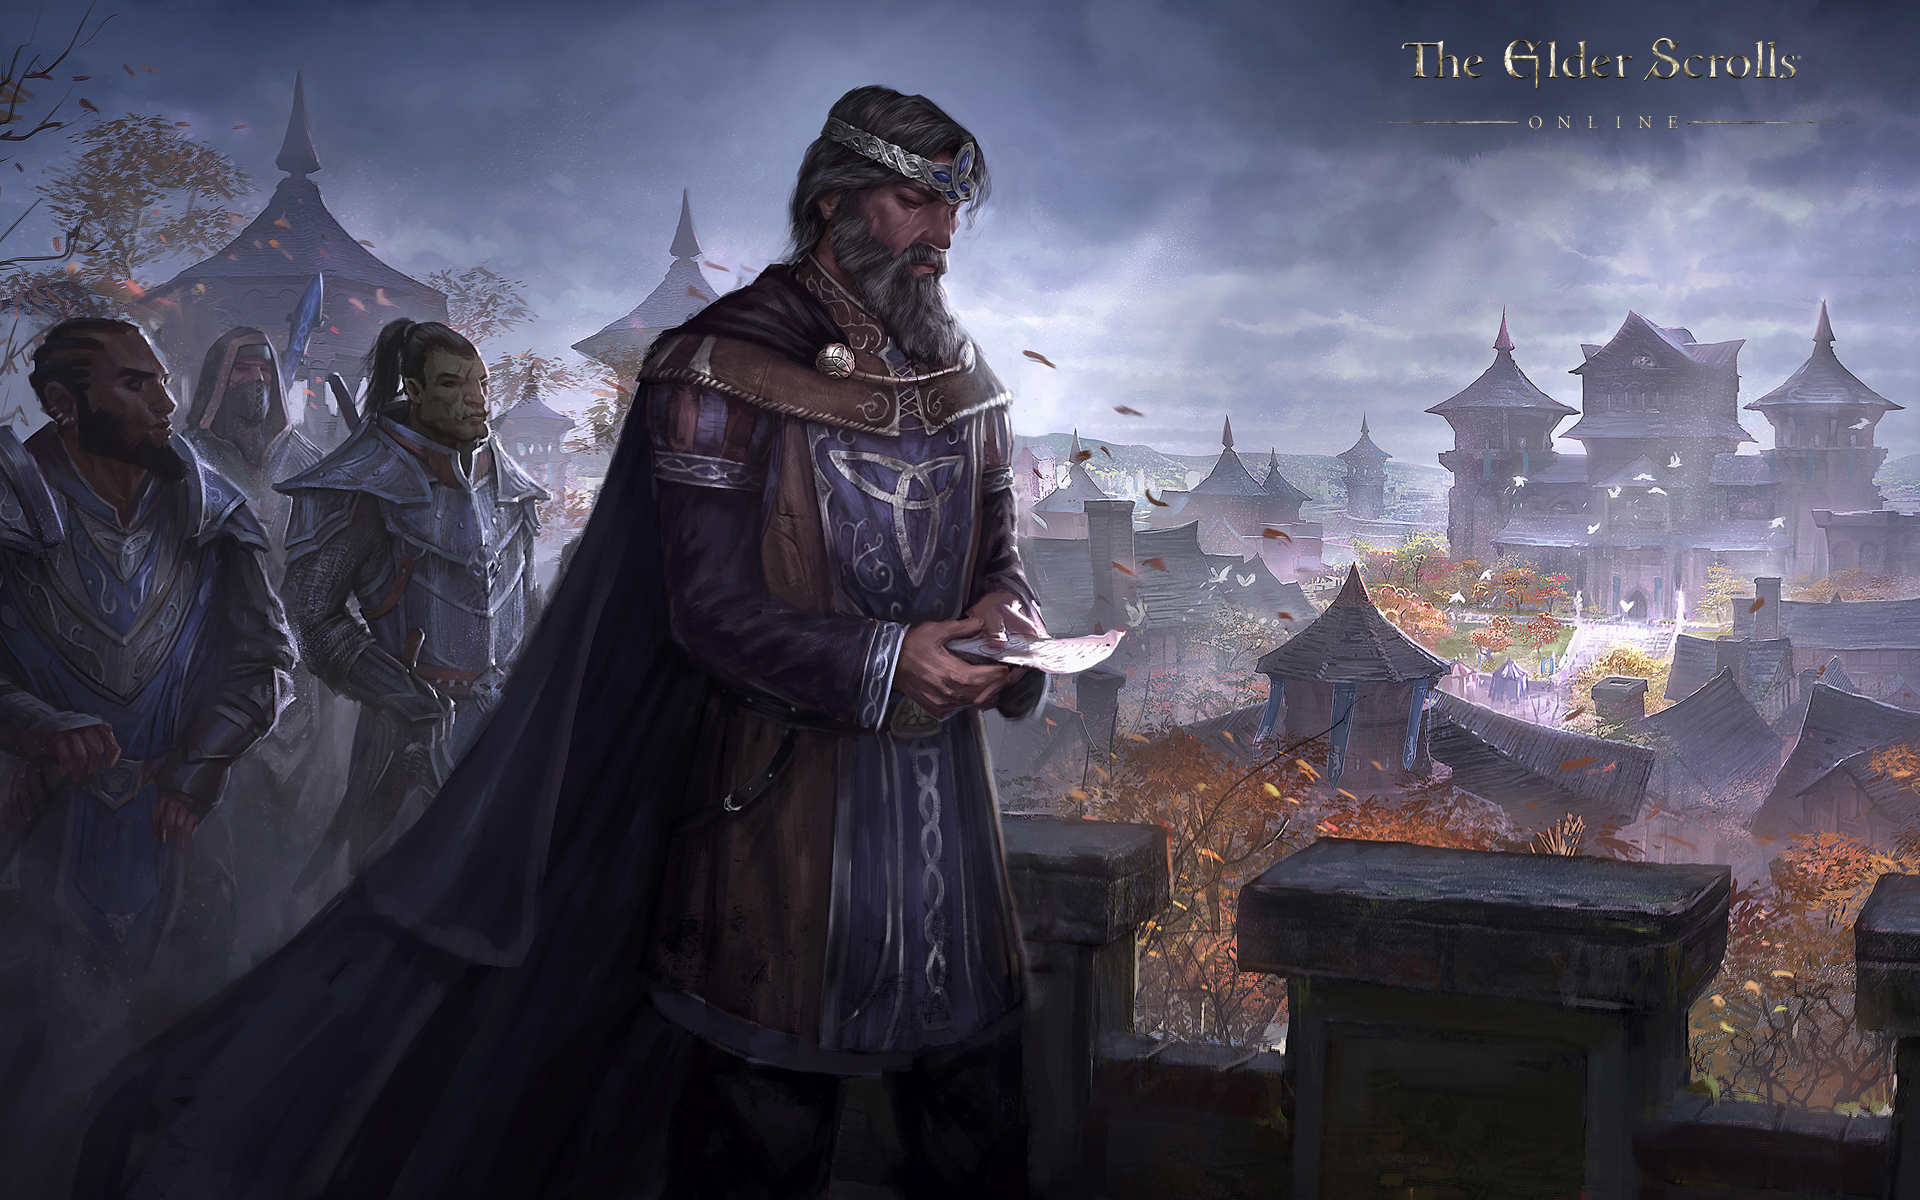 Wallpaper The Elder Scrolls Online: King Emeric